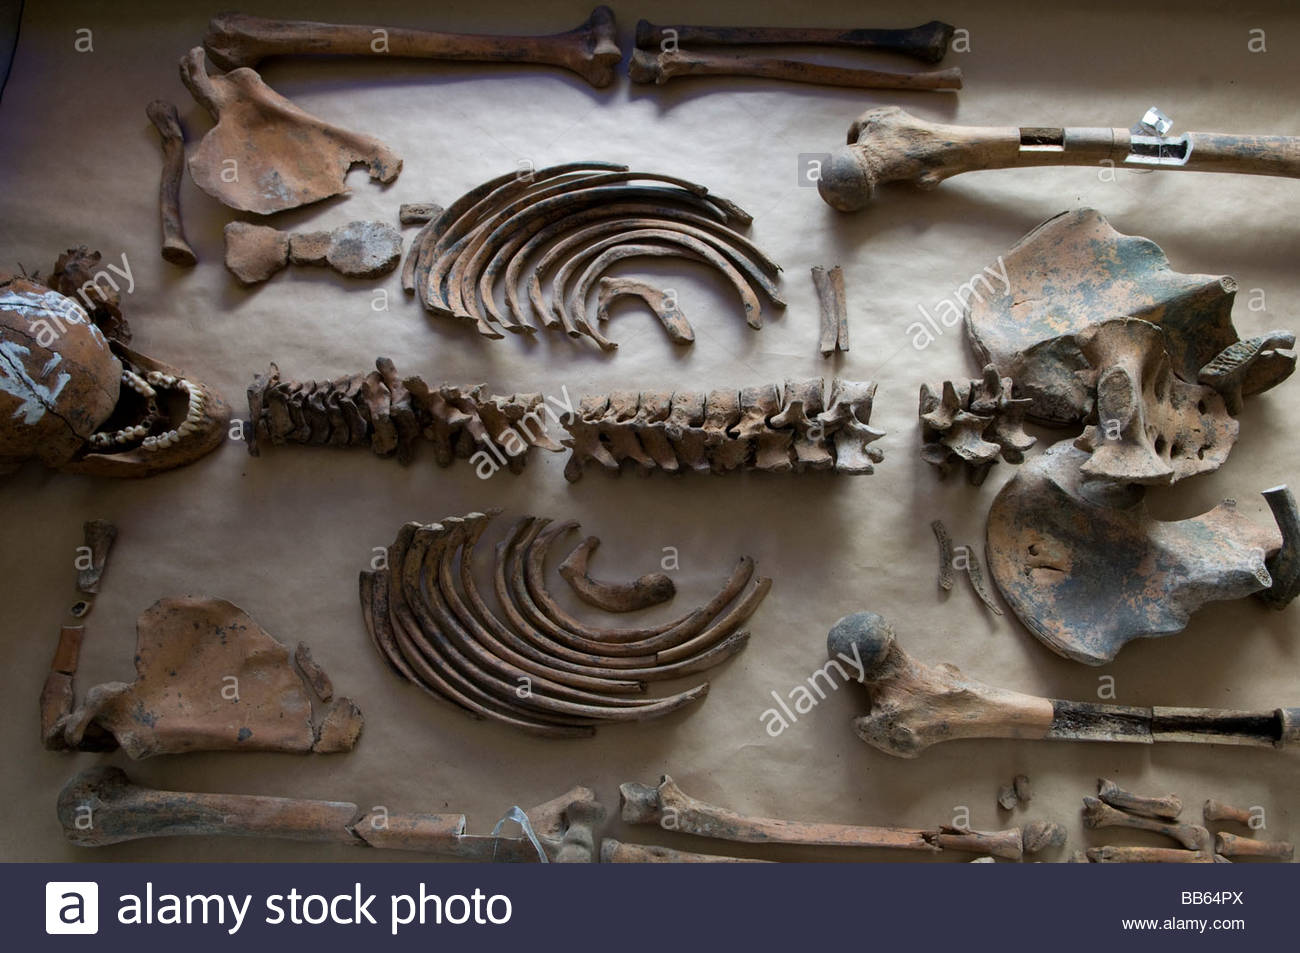 Remains of human skull and bones at the mortuary facility of ICMP commission of missing persons in town of Tuzla, - Stock Image